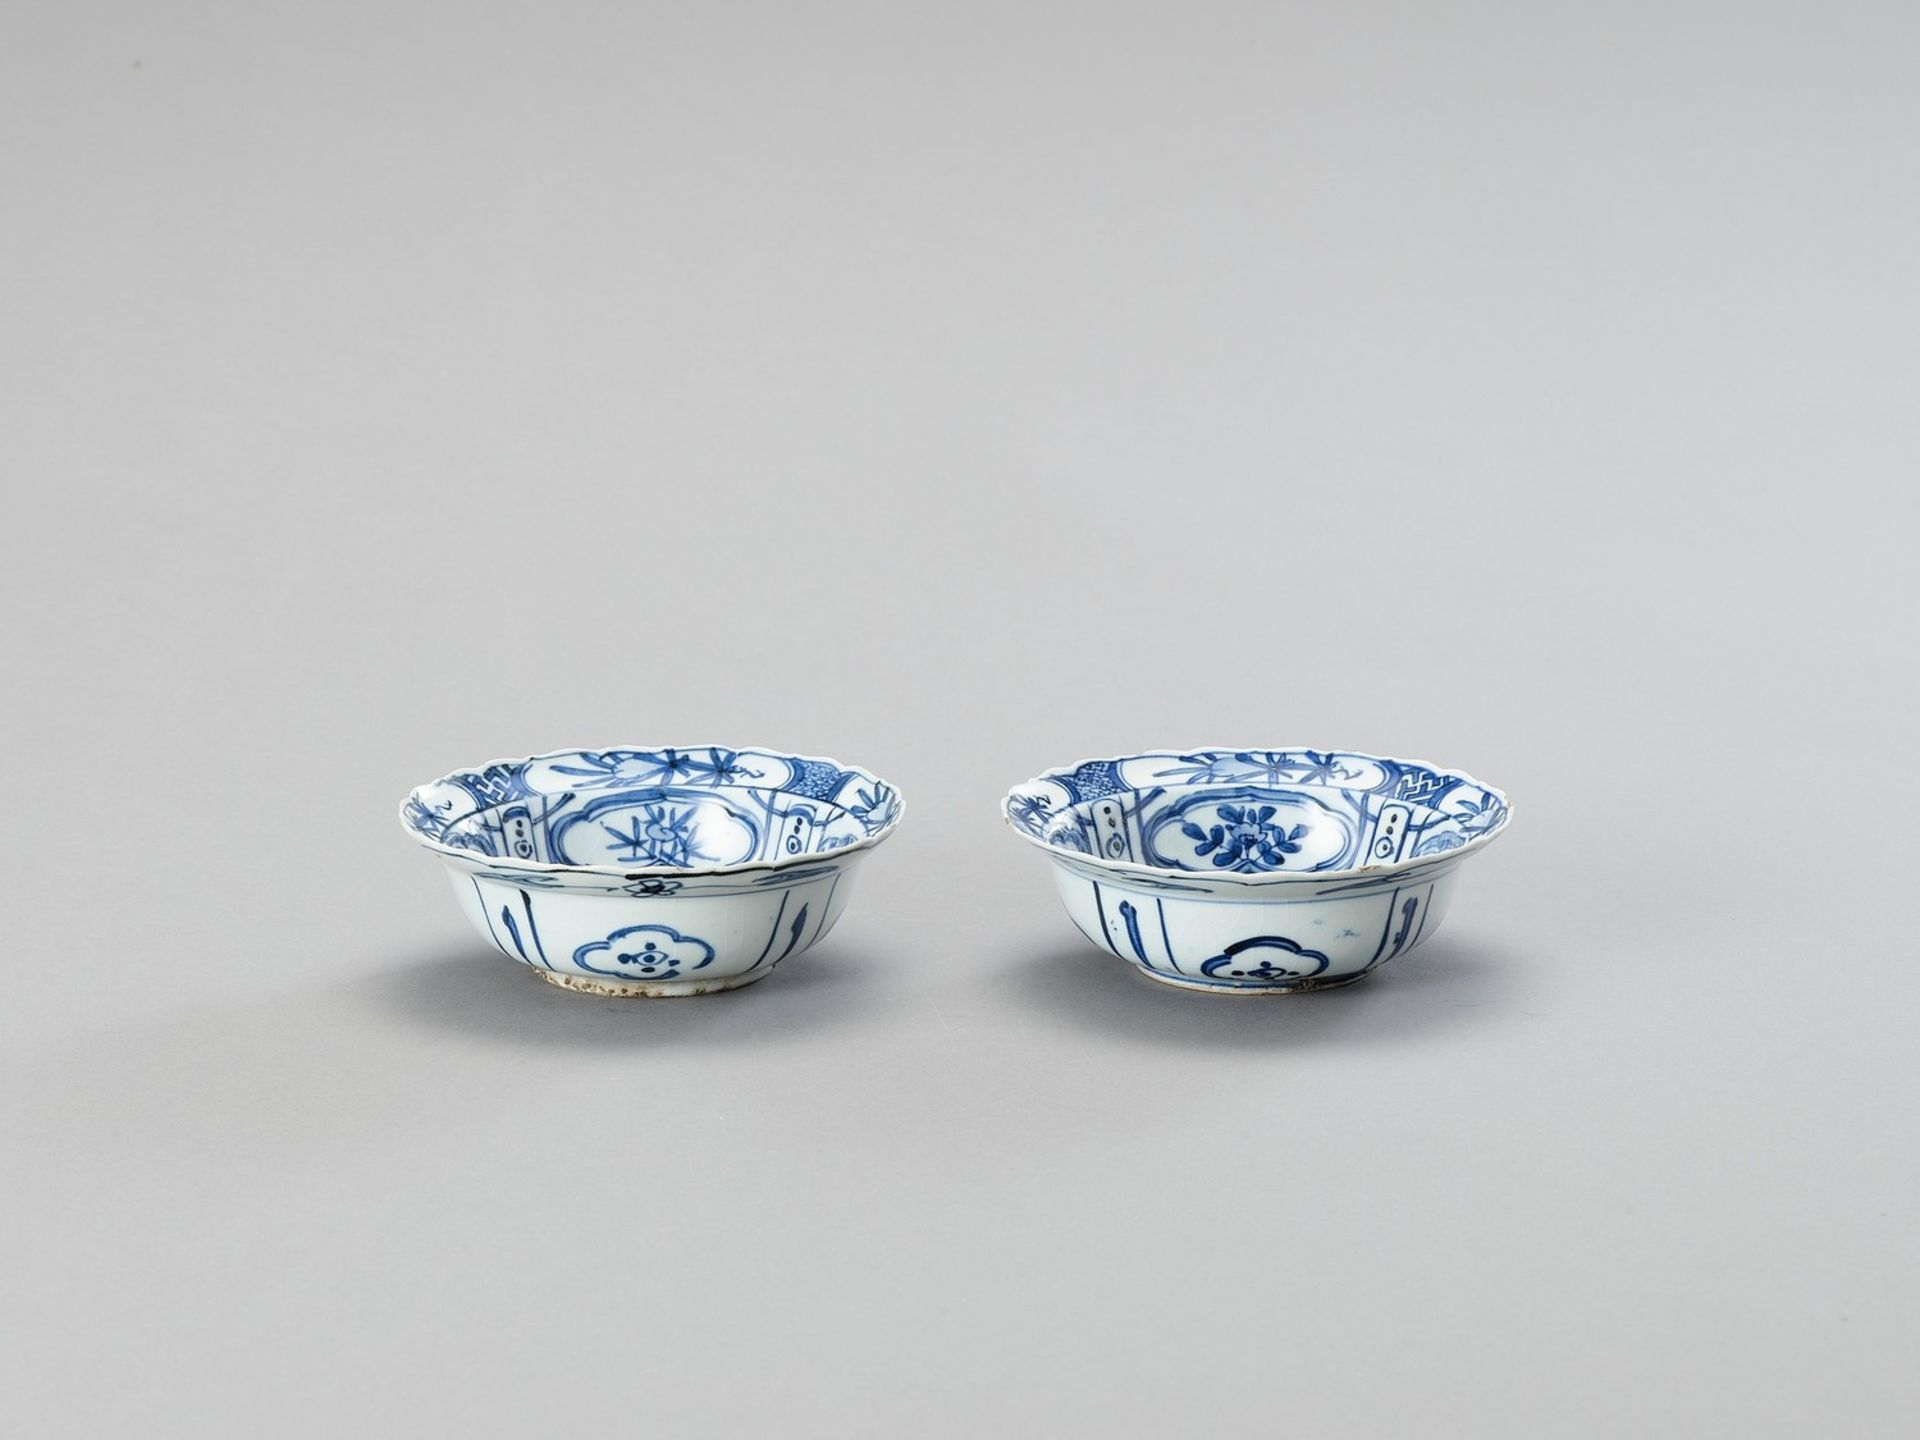 A PAIR OF BLUE AND WHITE 'KRAAK' STYLE PORCELAIN BOWLS - Image 4 of 4